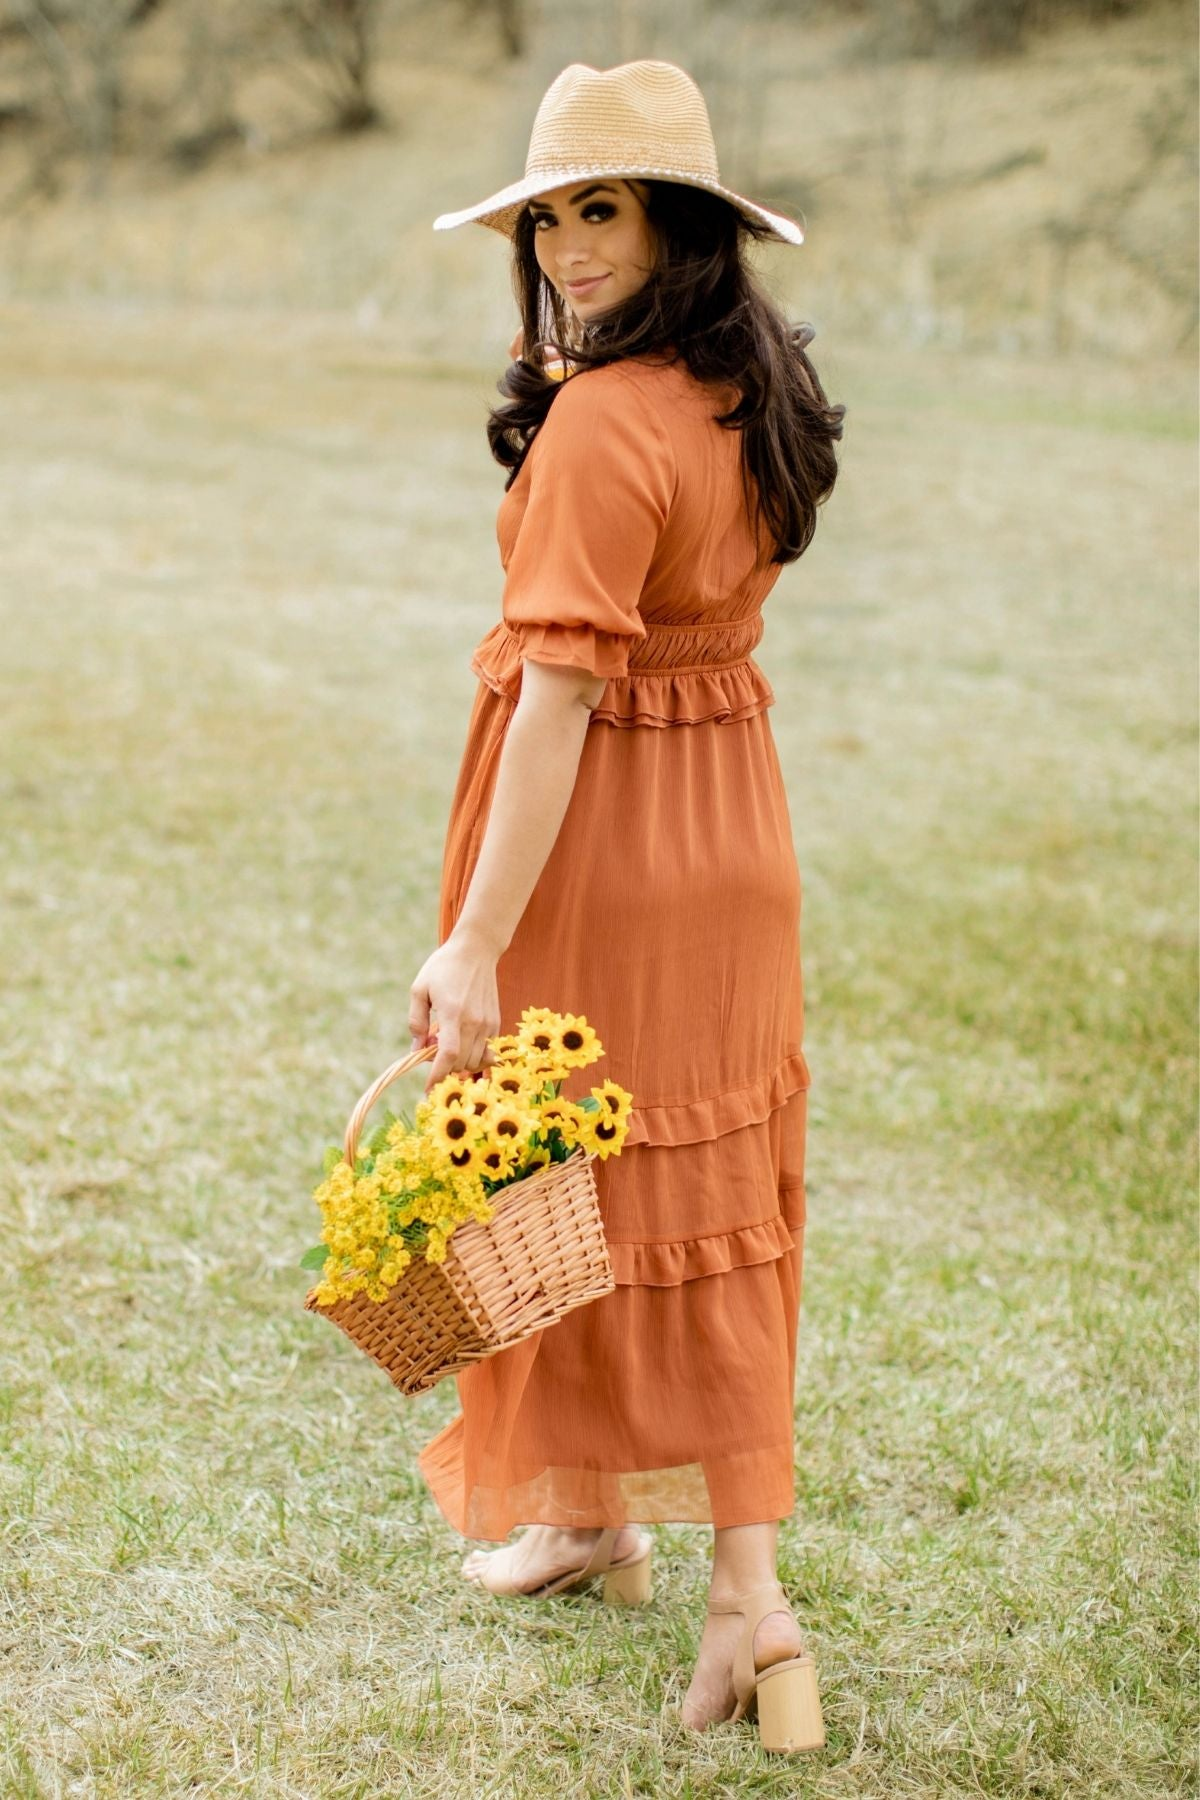 Women's Summer Collection with Orange Dress